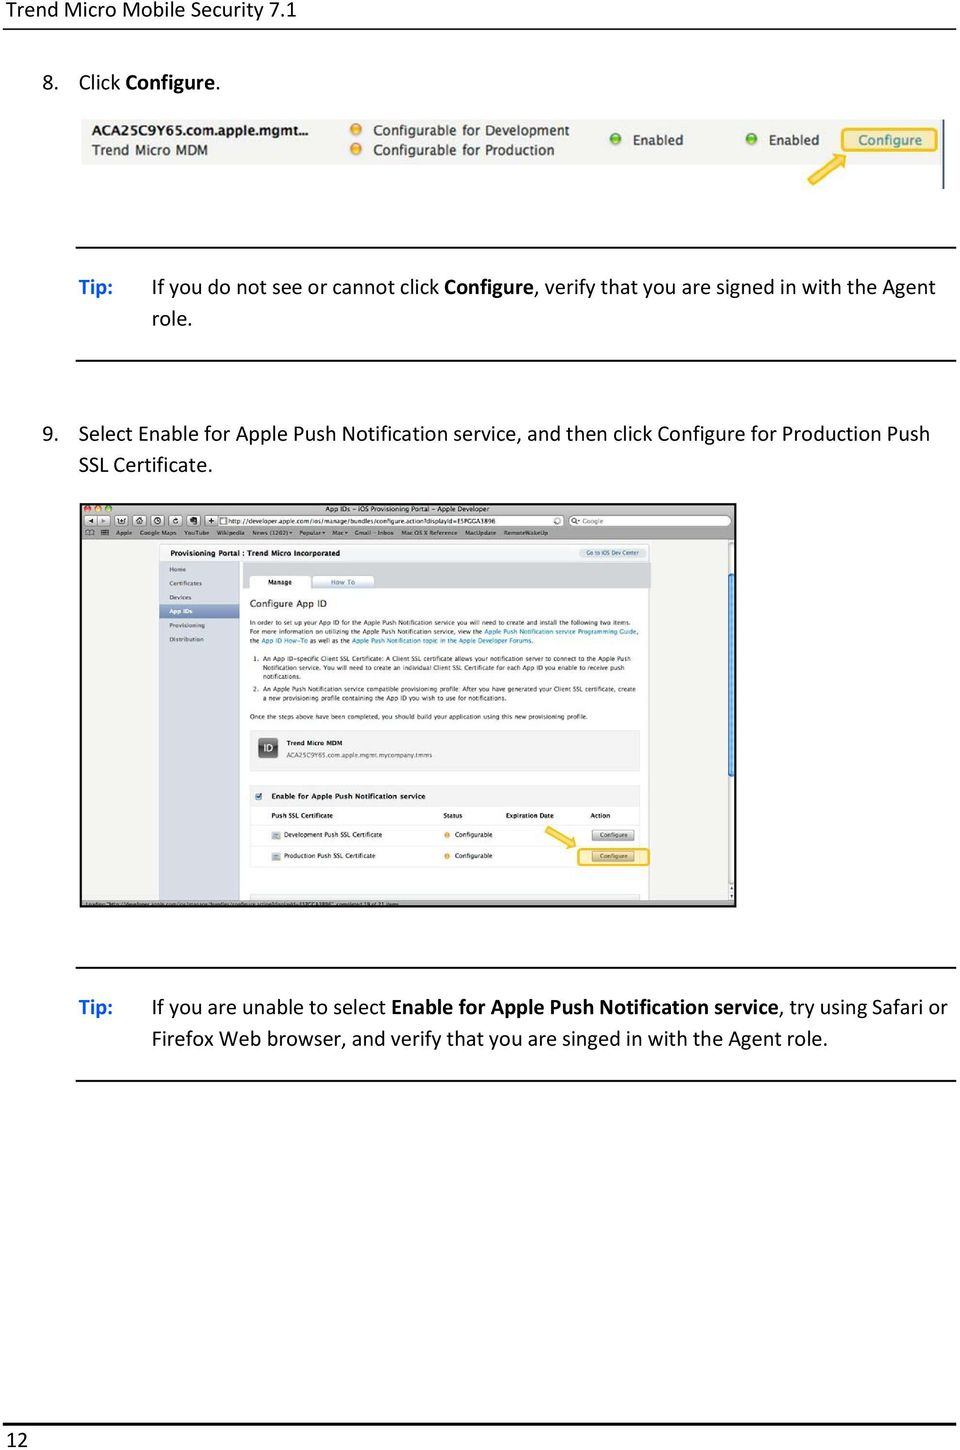 Guide For Generating Apple Push Notification Service Certificate Pdf